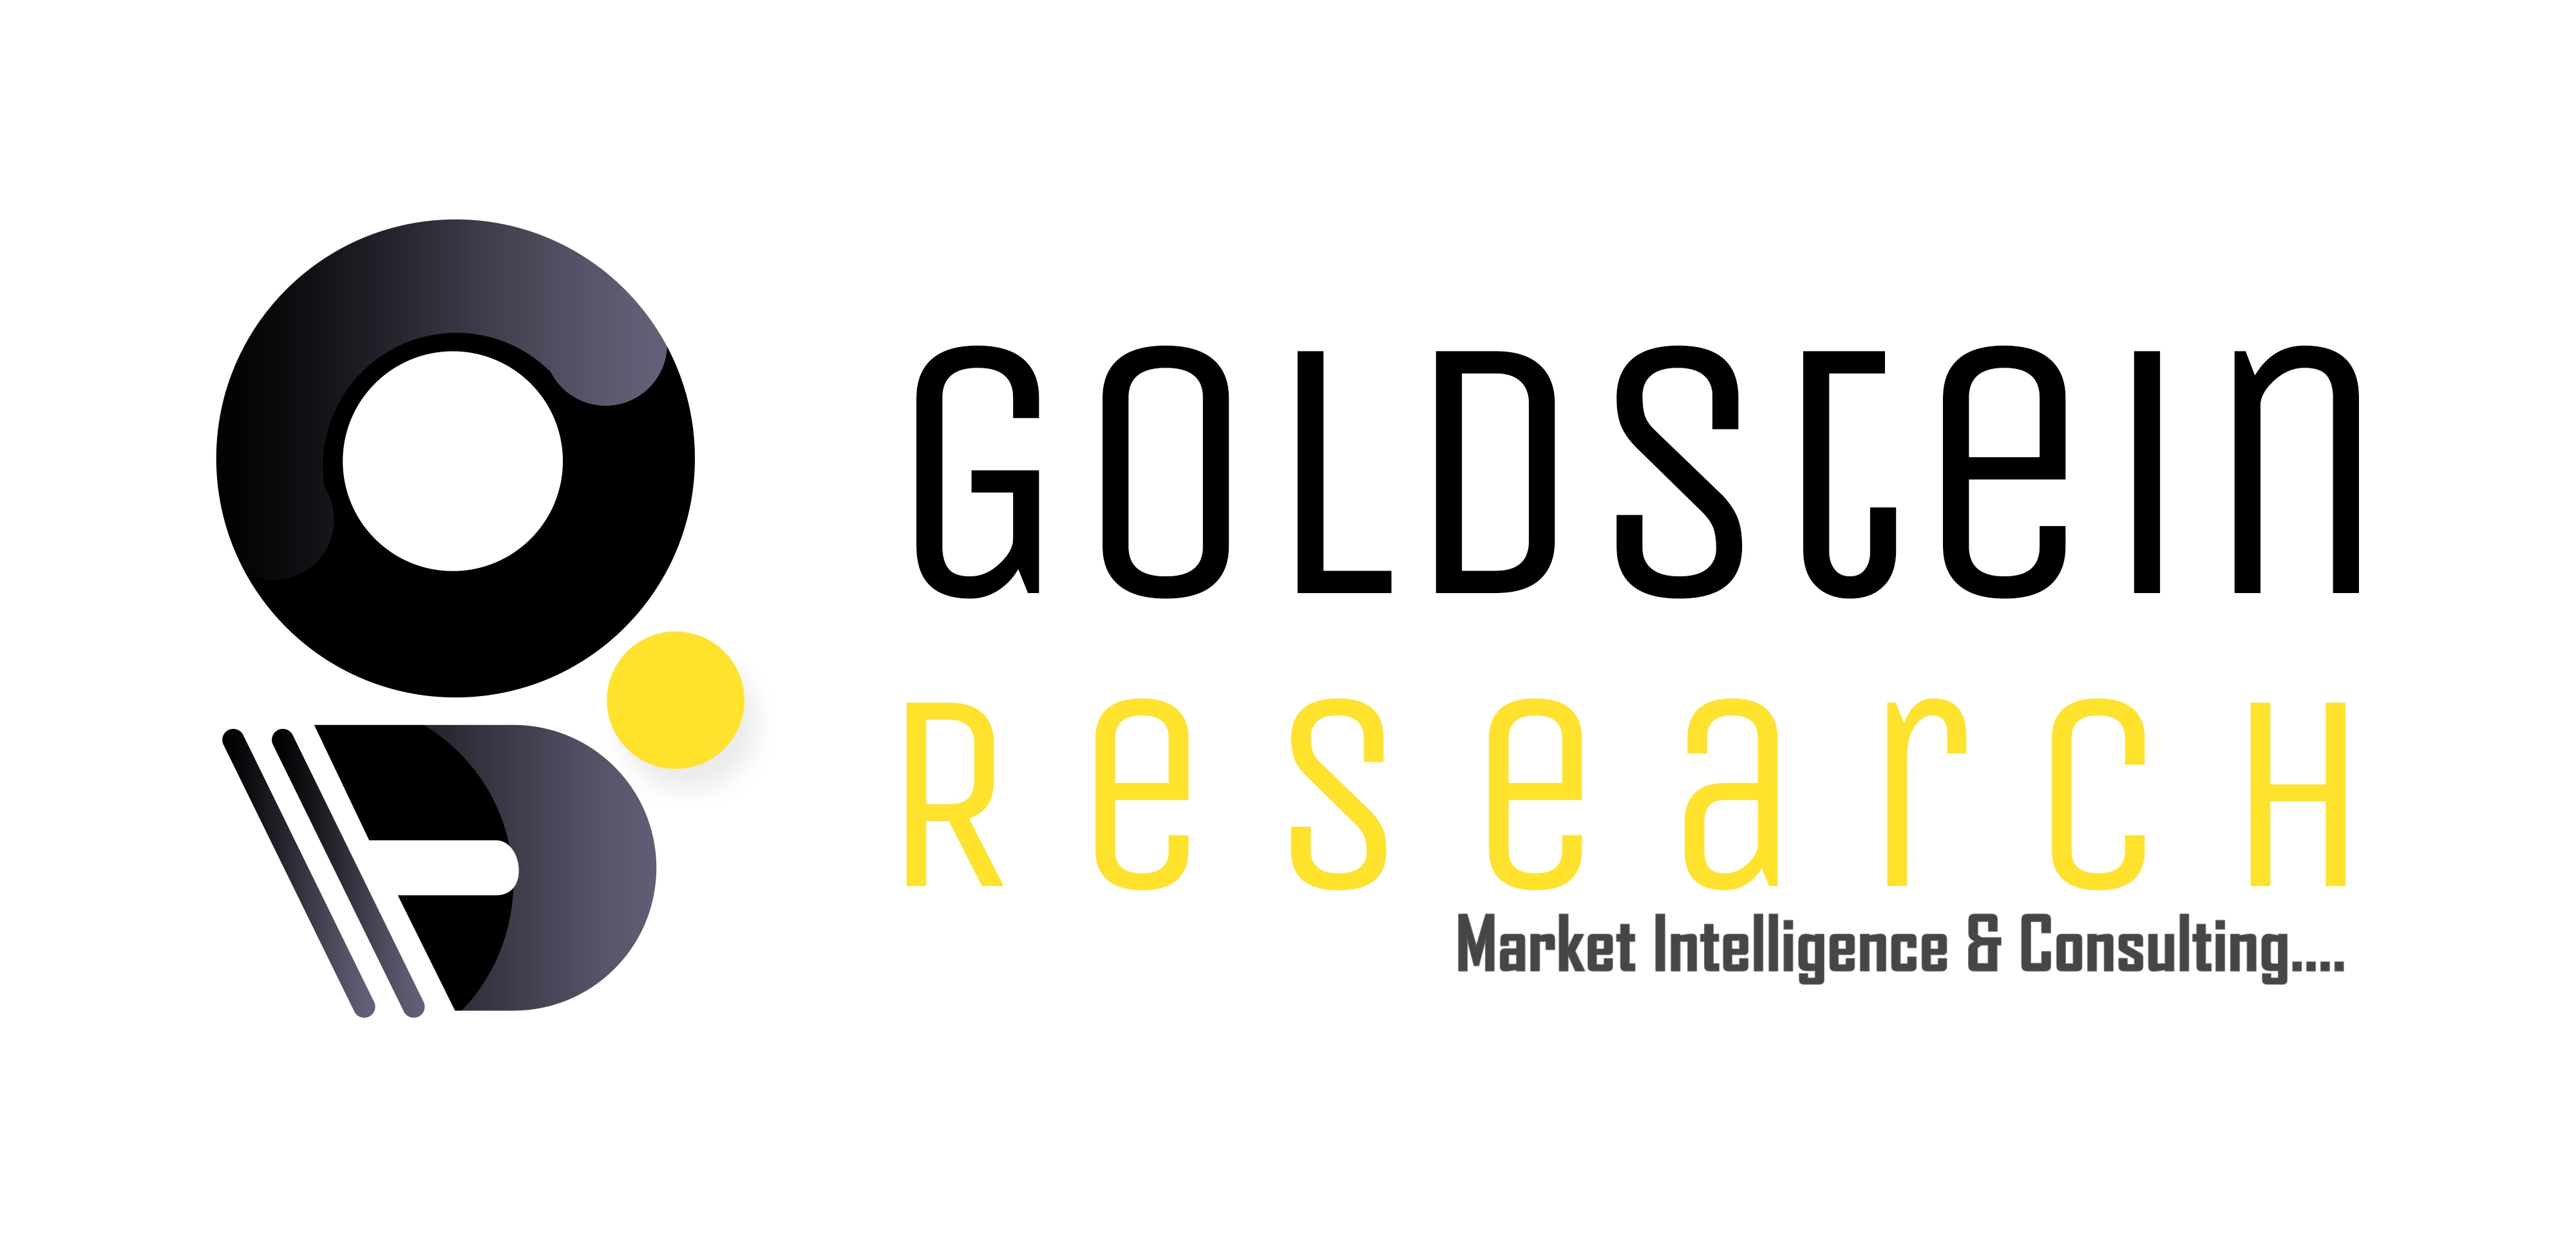 Smart Parking Market to witness Highest Growth in Asia Pacific through 2024: Goldstein Research